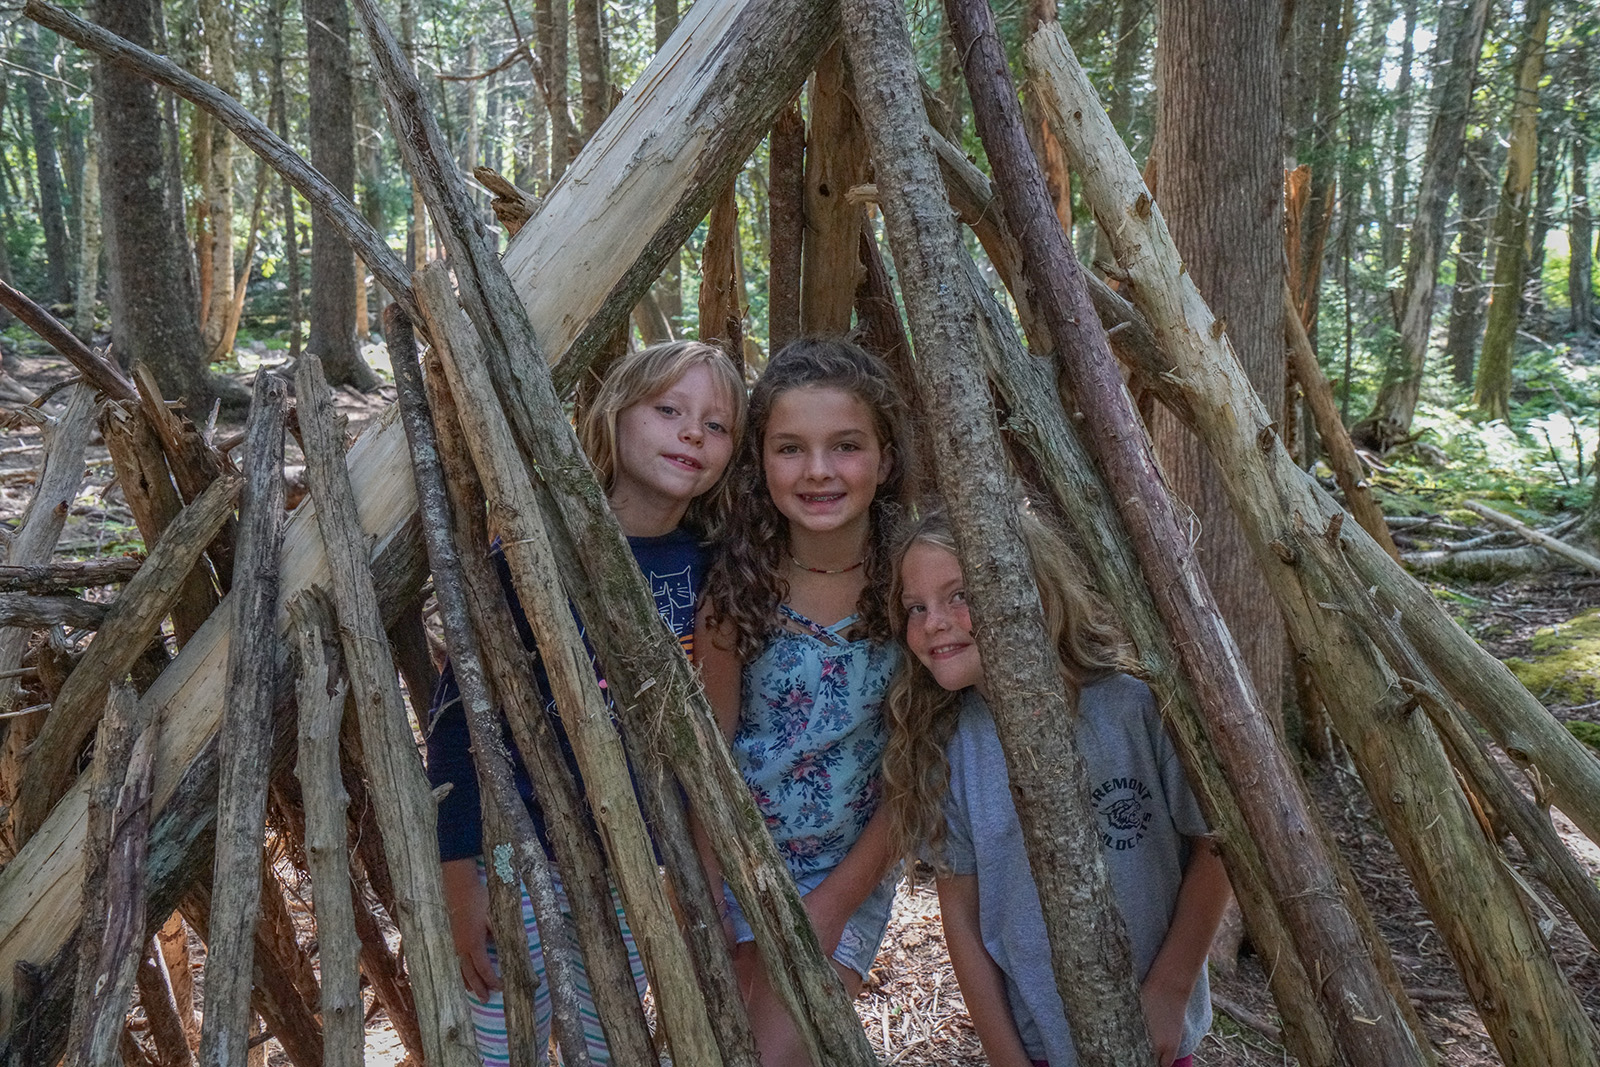 By our count, campers constructed 46 forts of various sizes and configurations this summer.